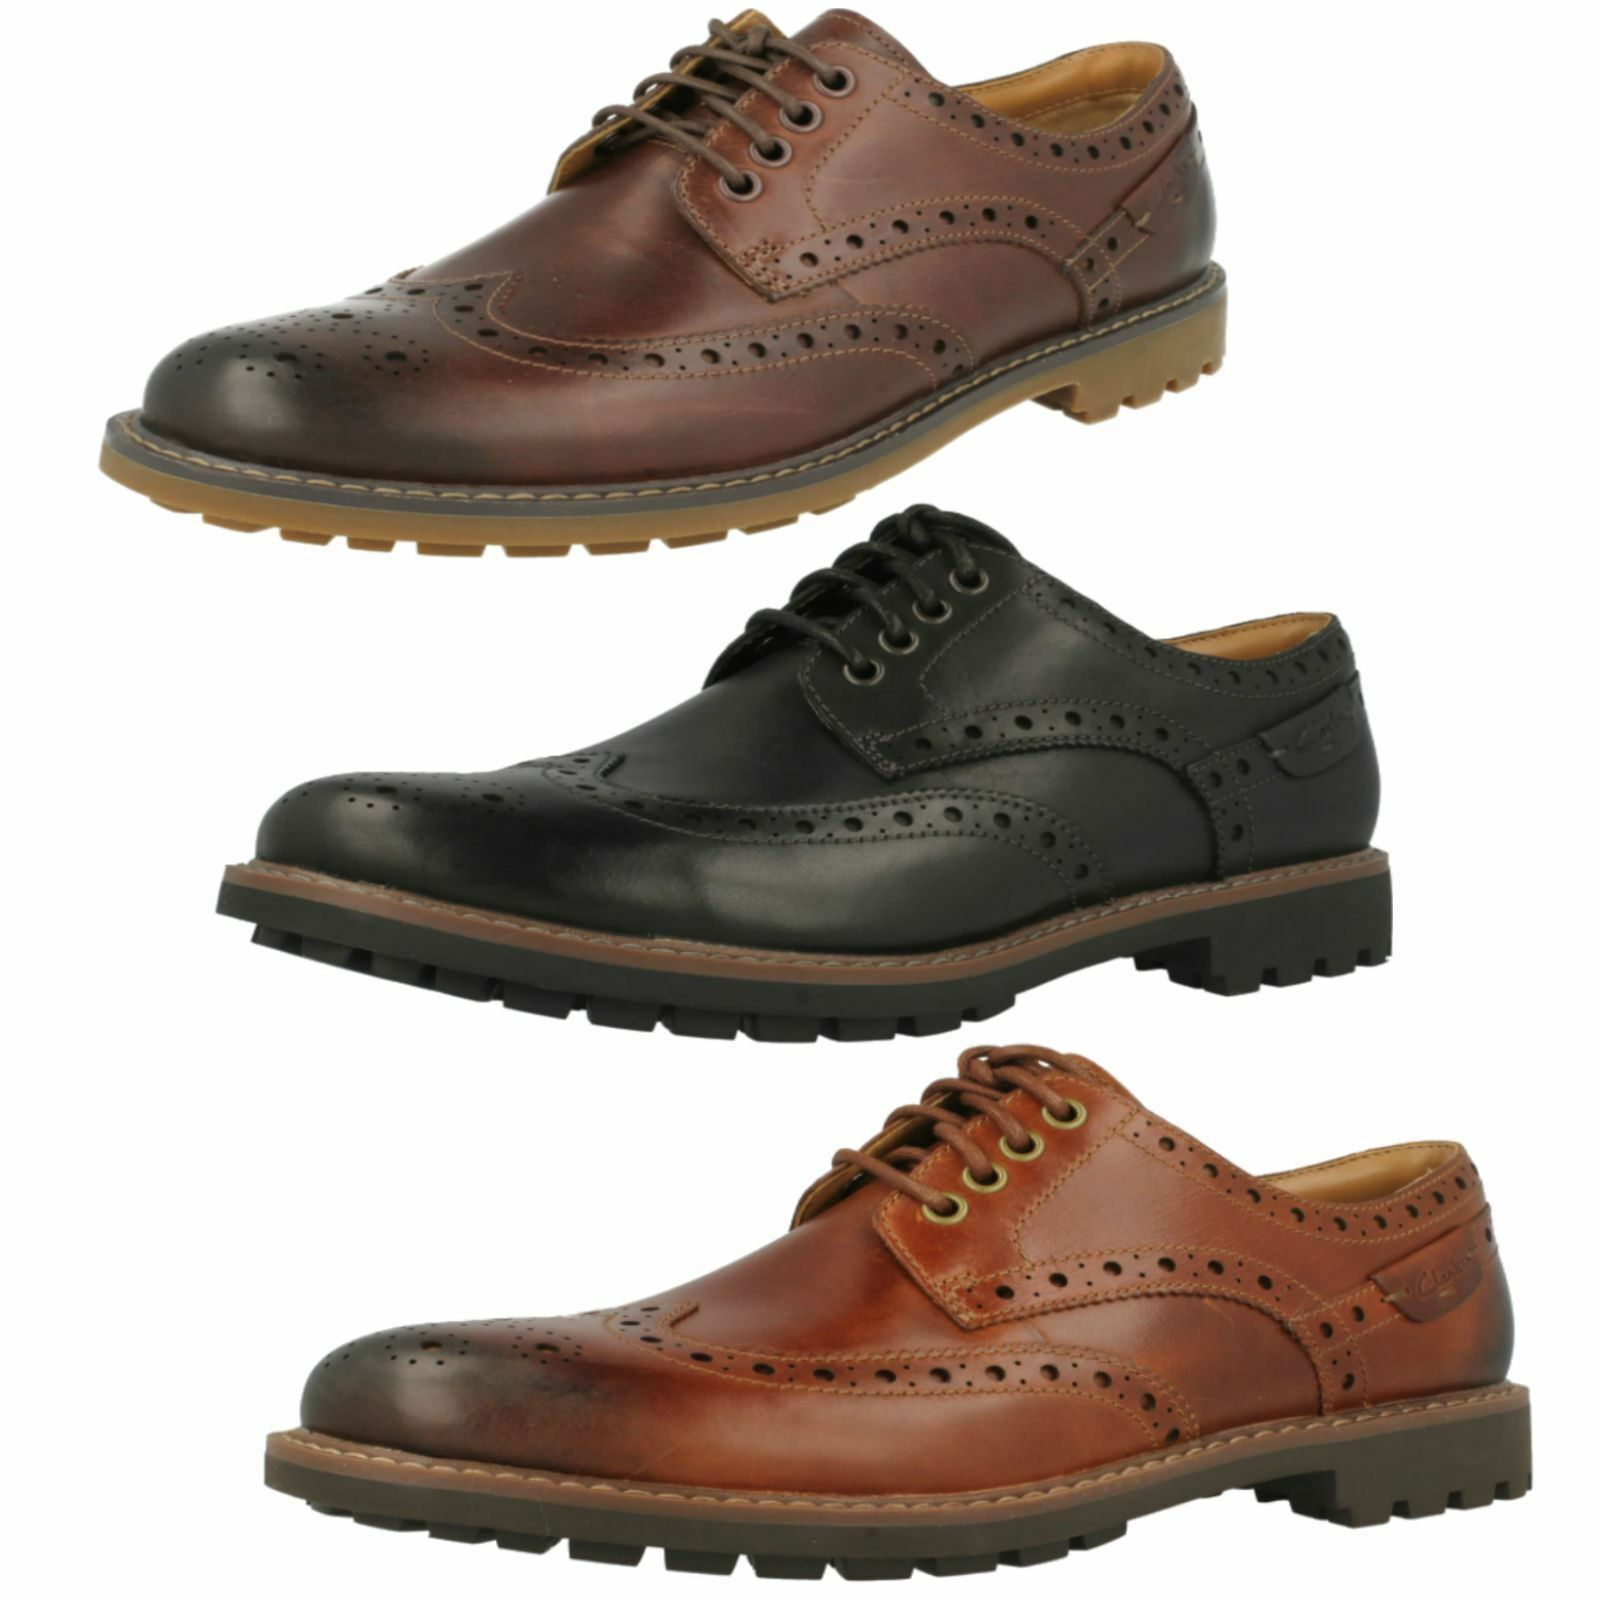 Uomo Clarks Montacute Wing Leder Casual G Lace Up Brogue Schuhes G Casual Fitting 8c000c